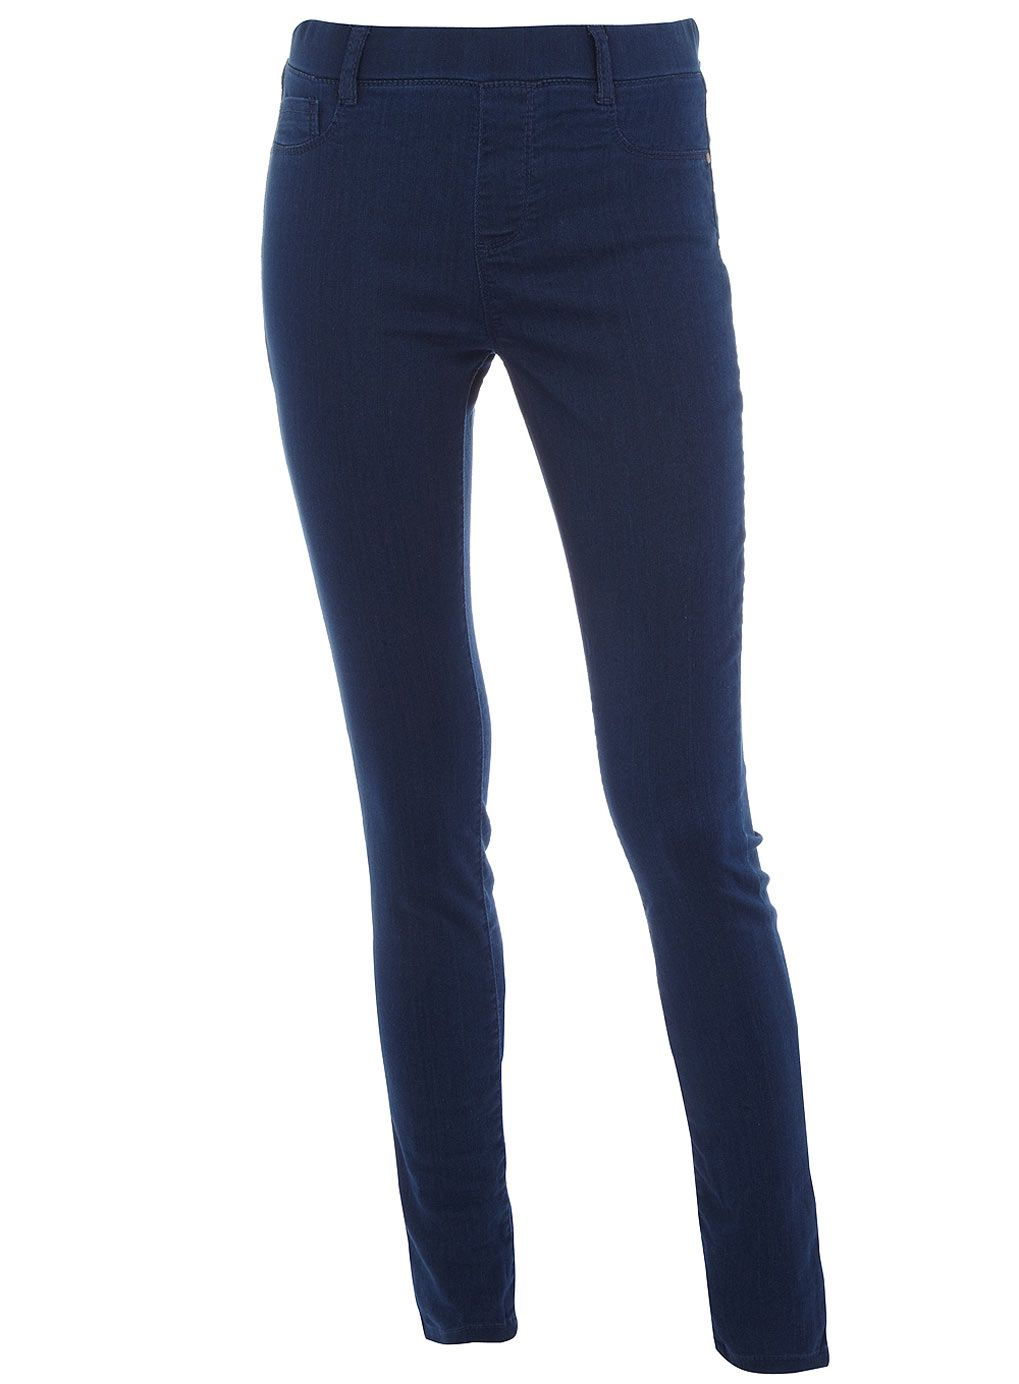 2a52493ece5 Tall Eden mid wash ultra soft jegging | Tall Women's Clothing ...